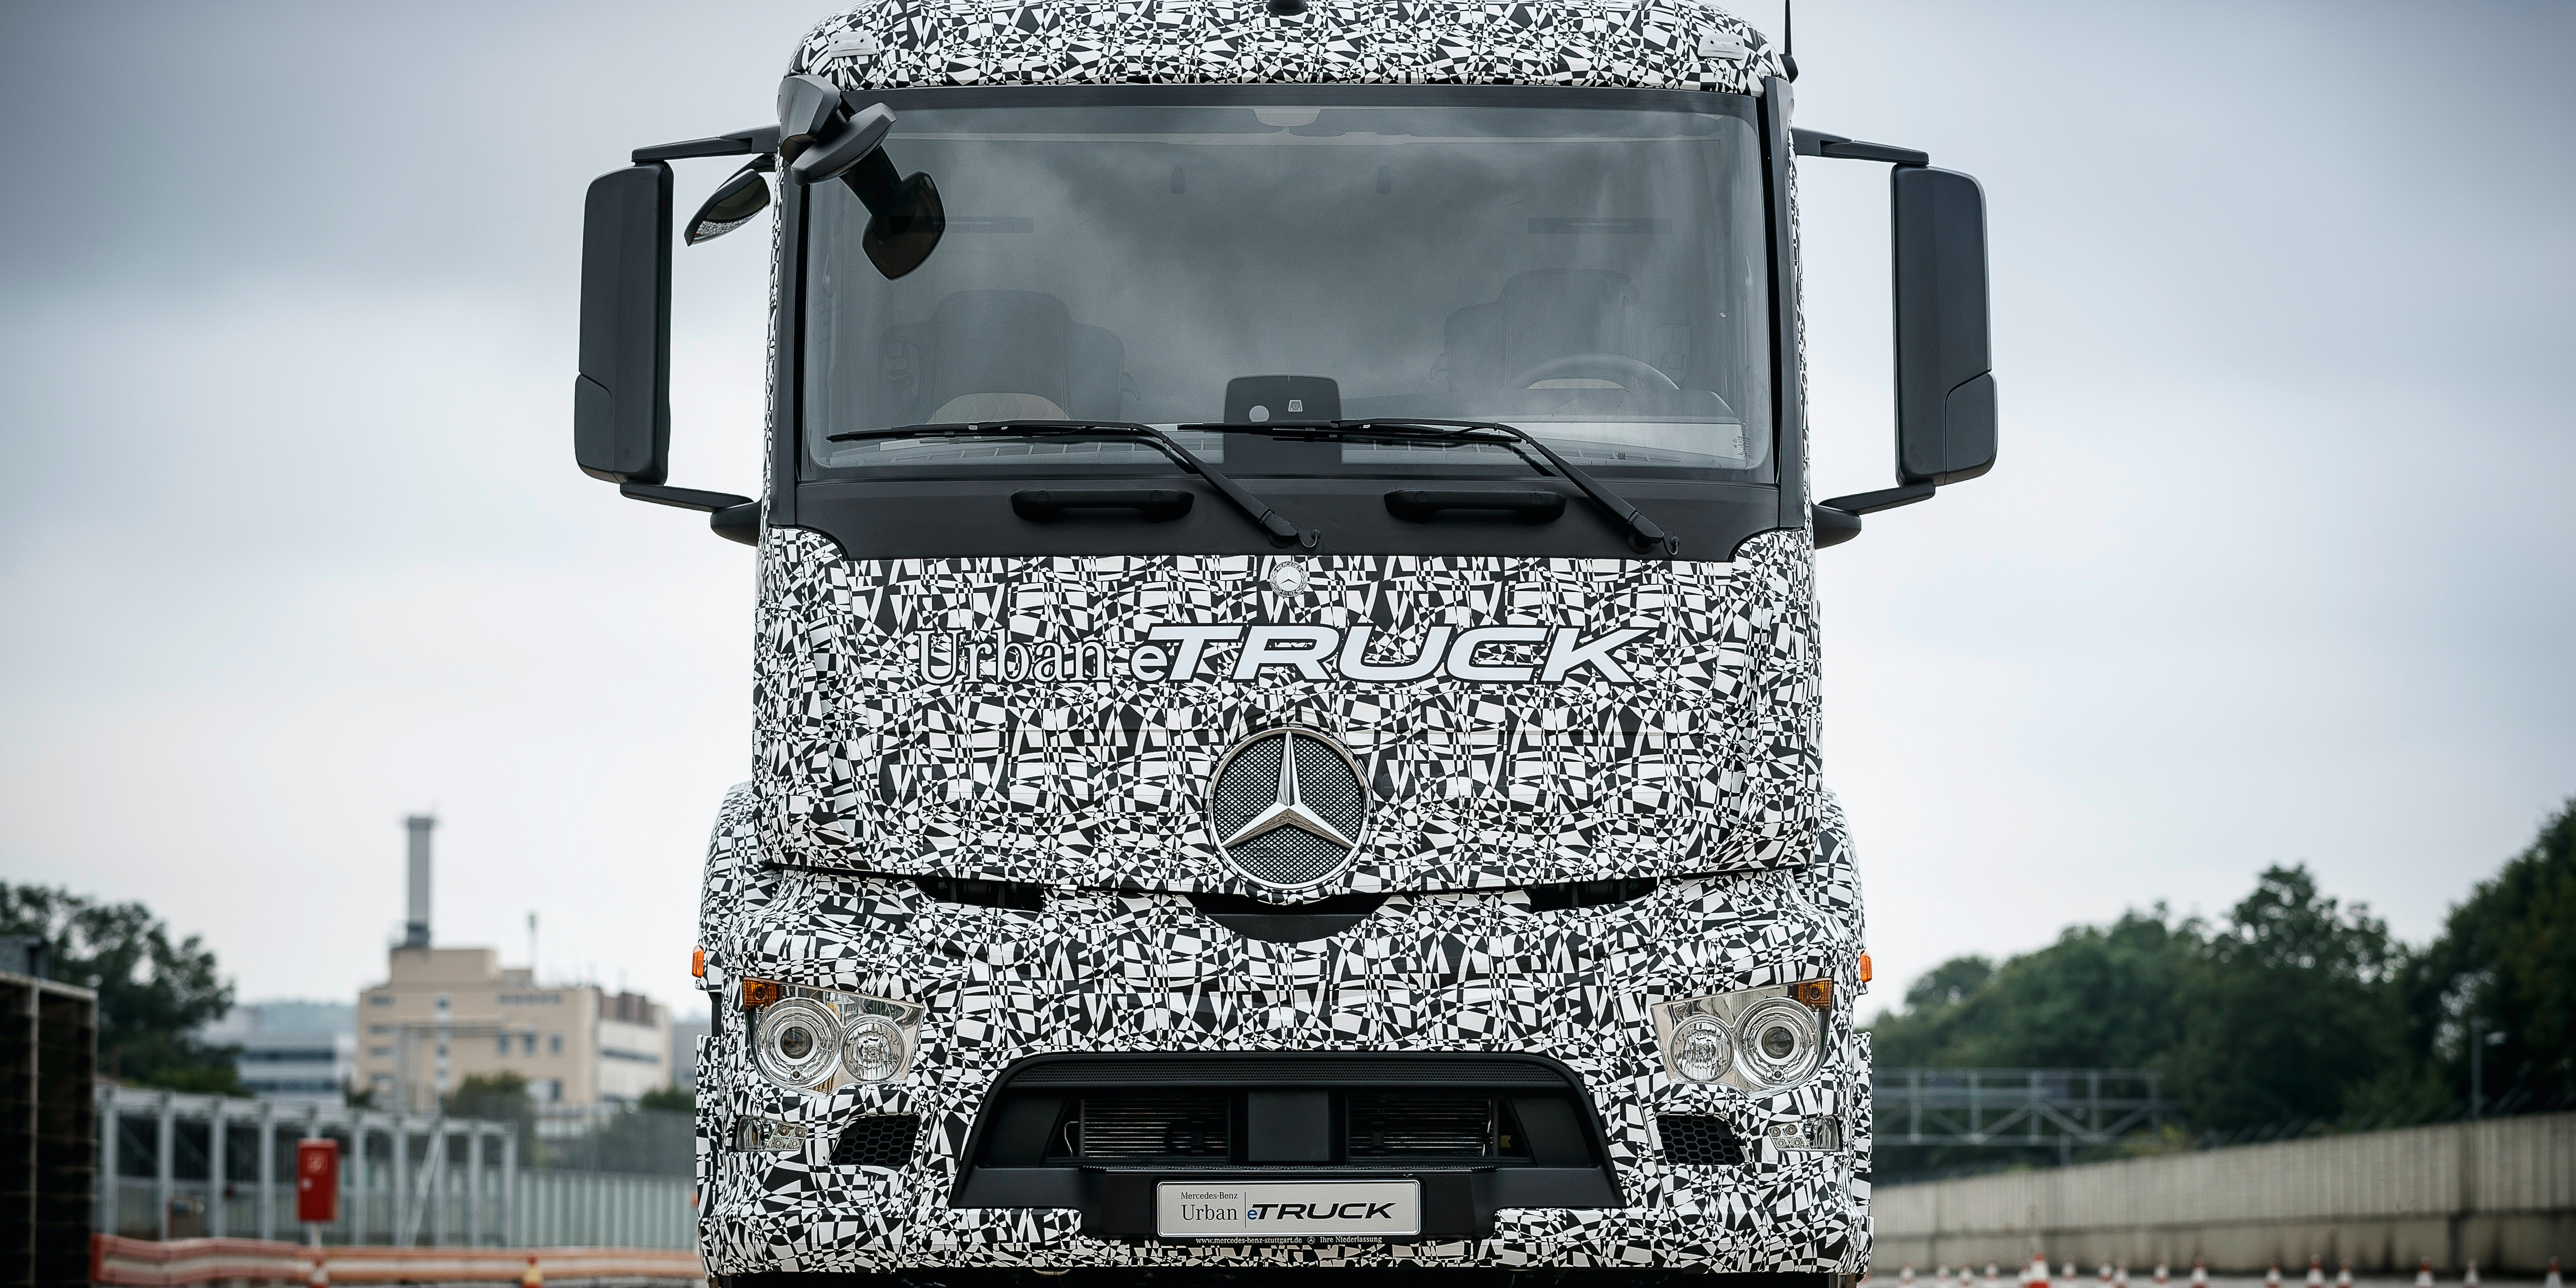 Mercedes-Benz will have electric semi truck by 2020.